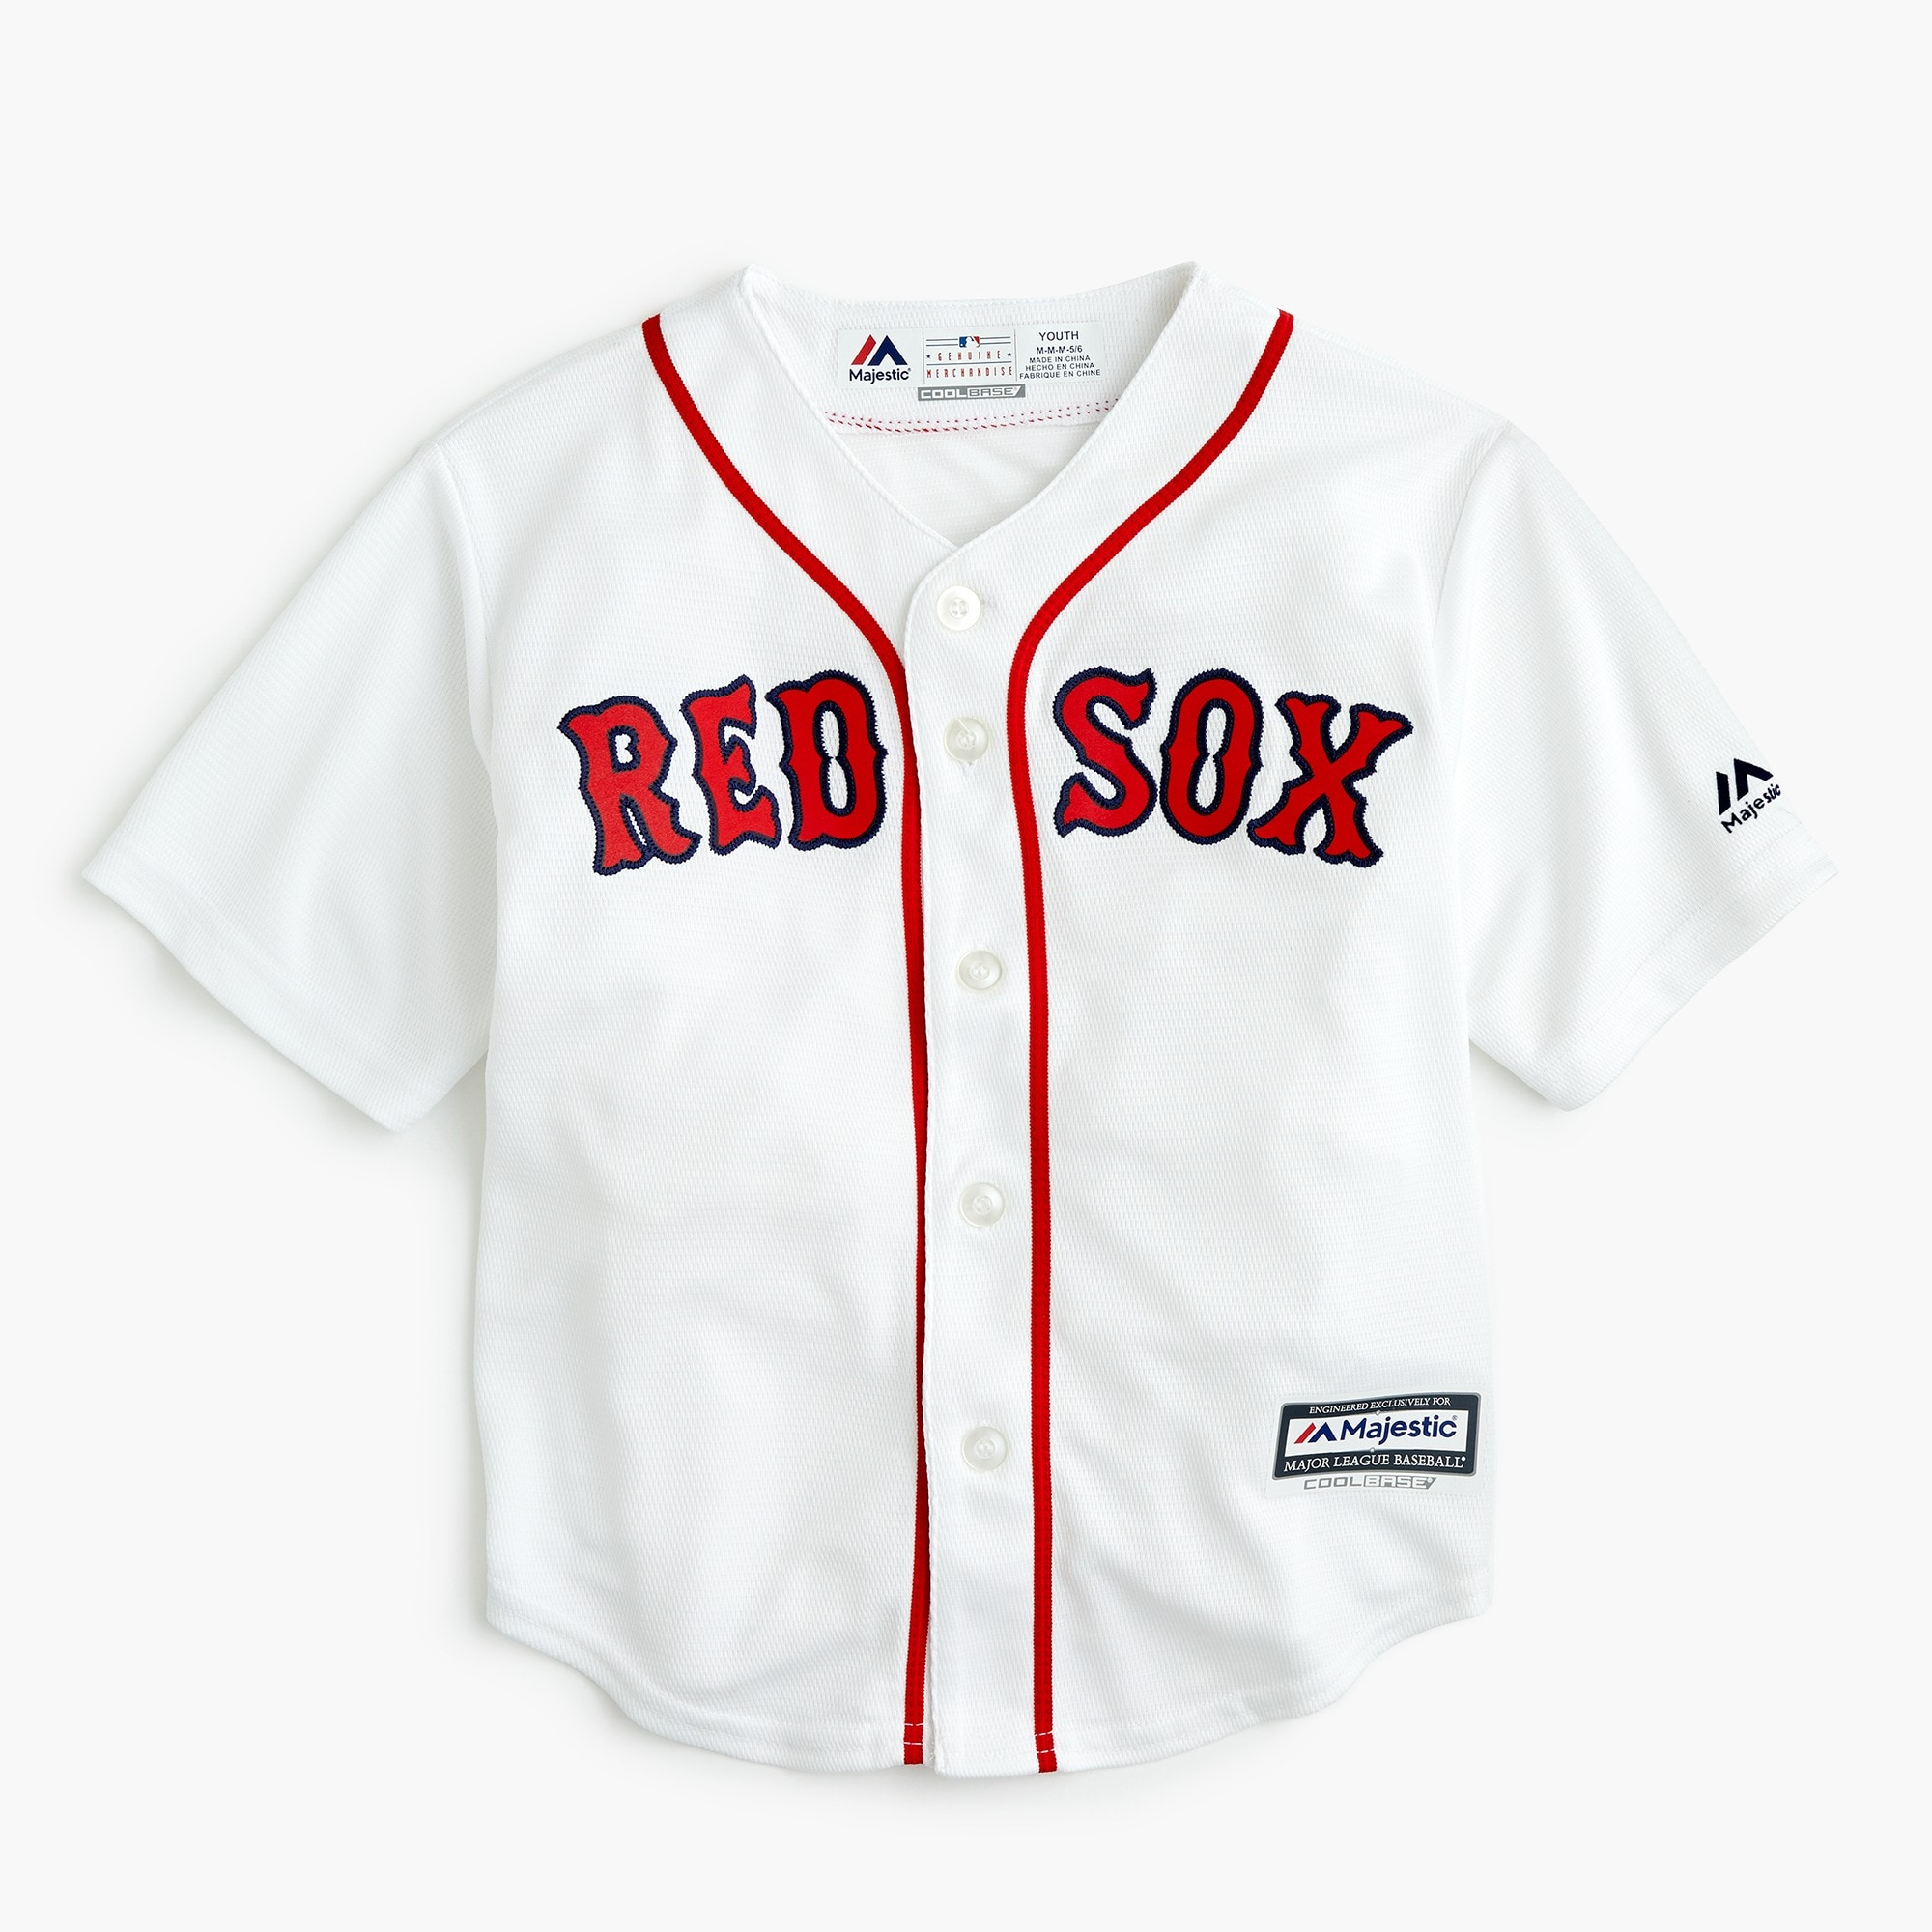 Kids' Boston Red Sox jersey boy new arrivals c